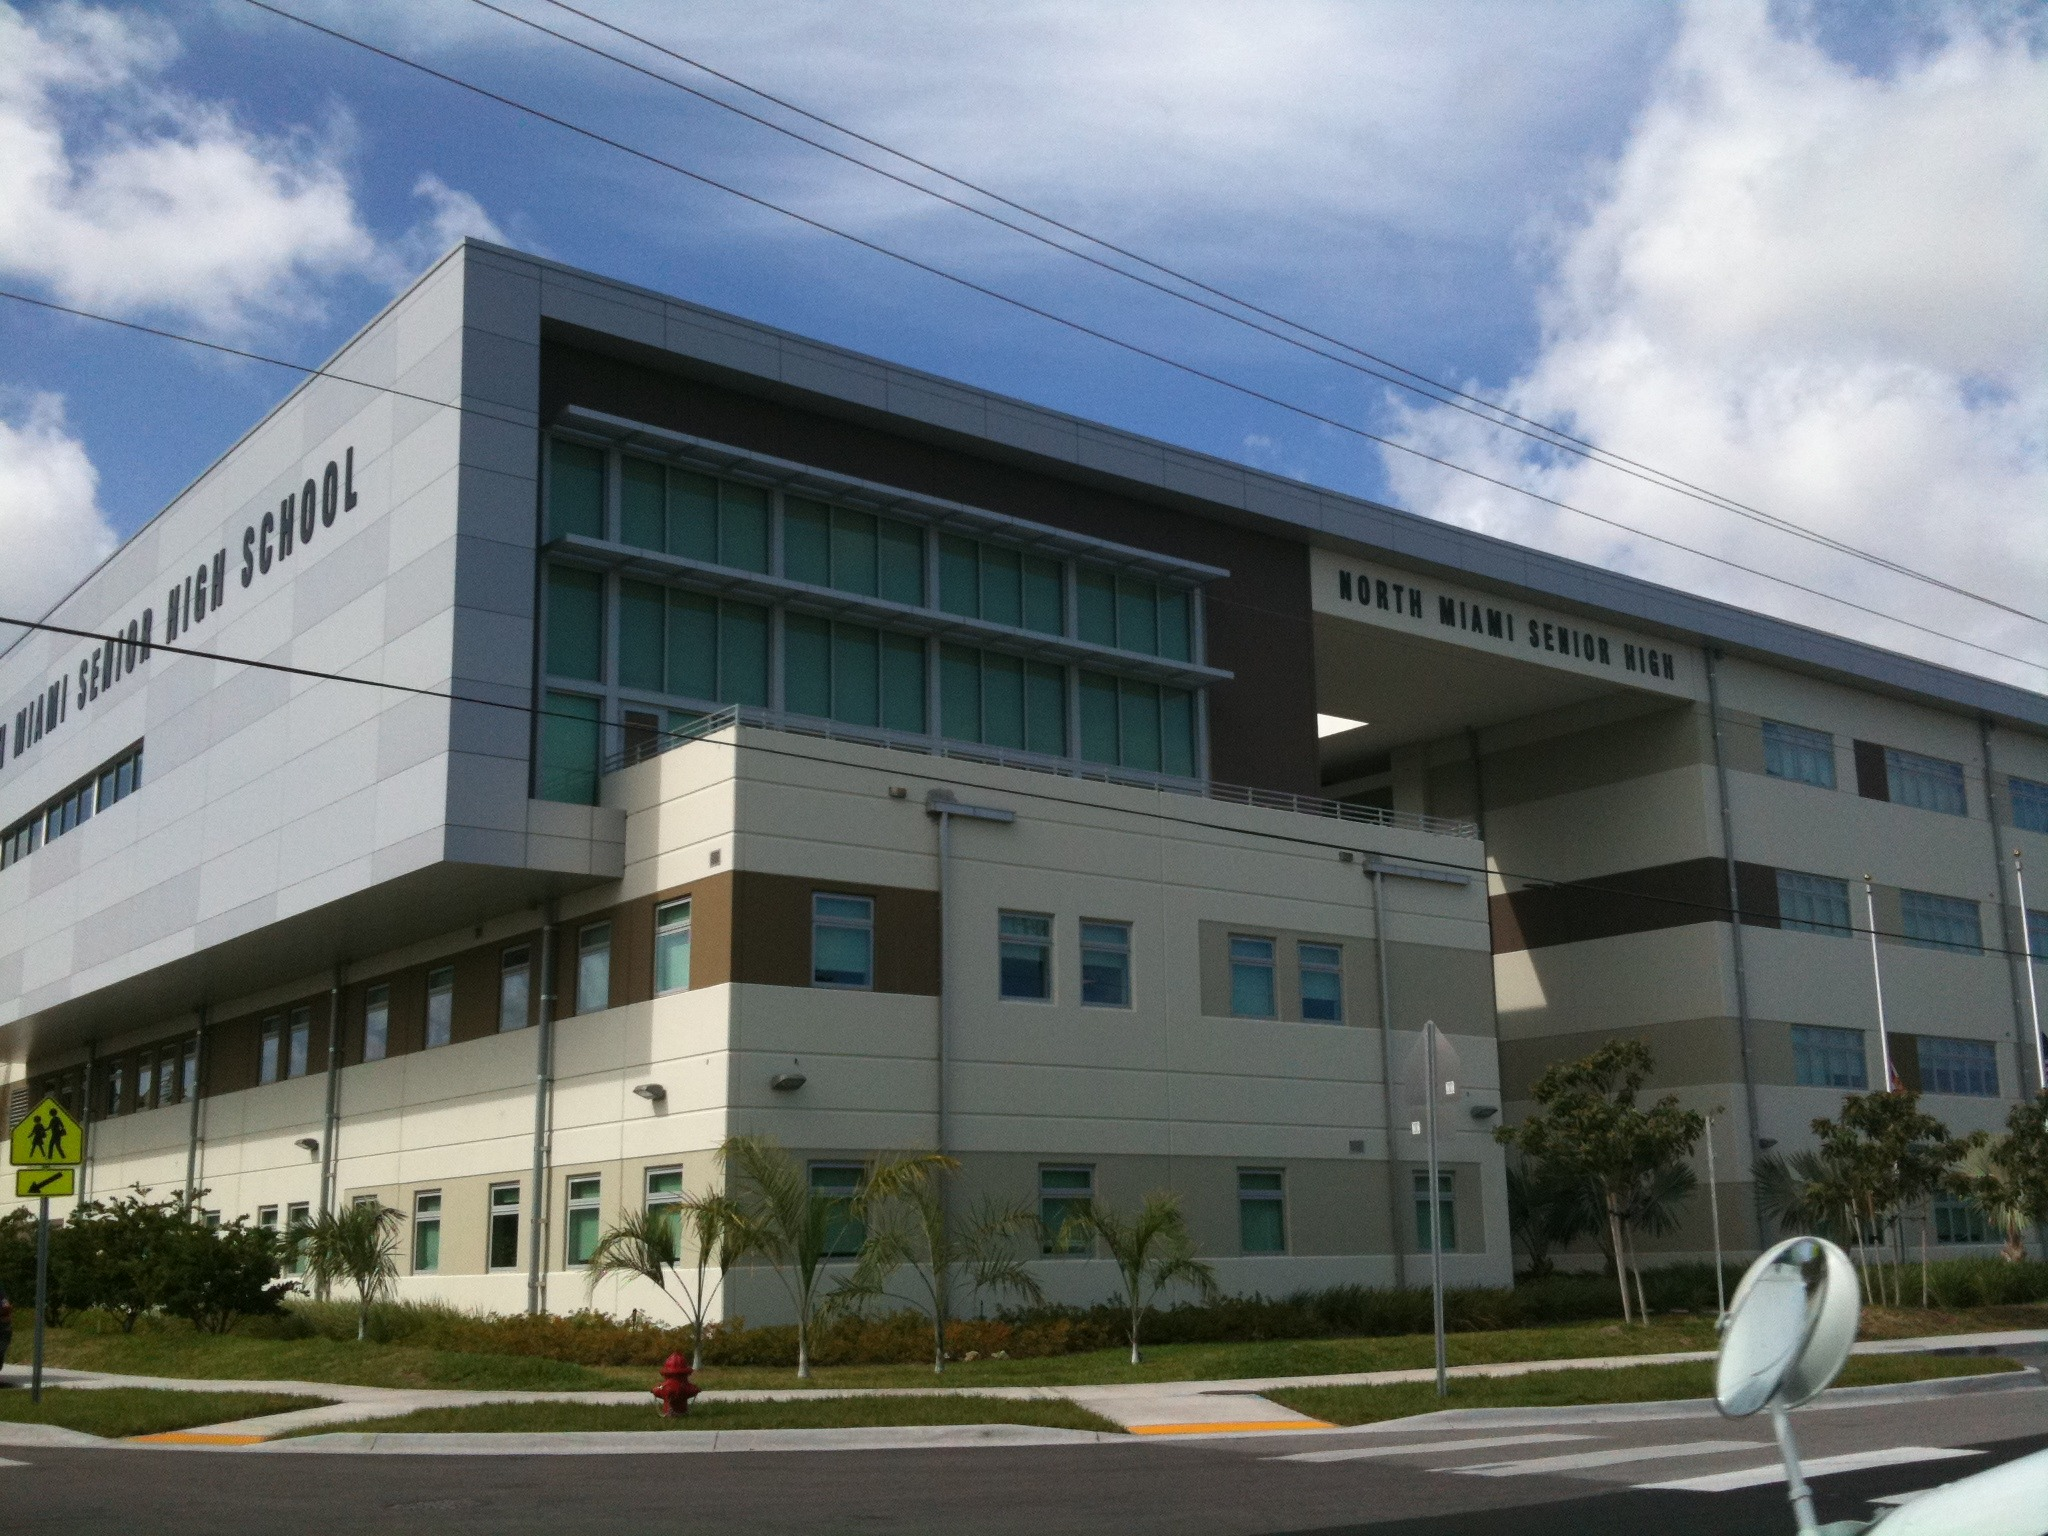 North Miami Beach Clinic